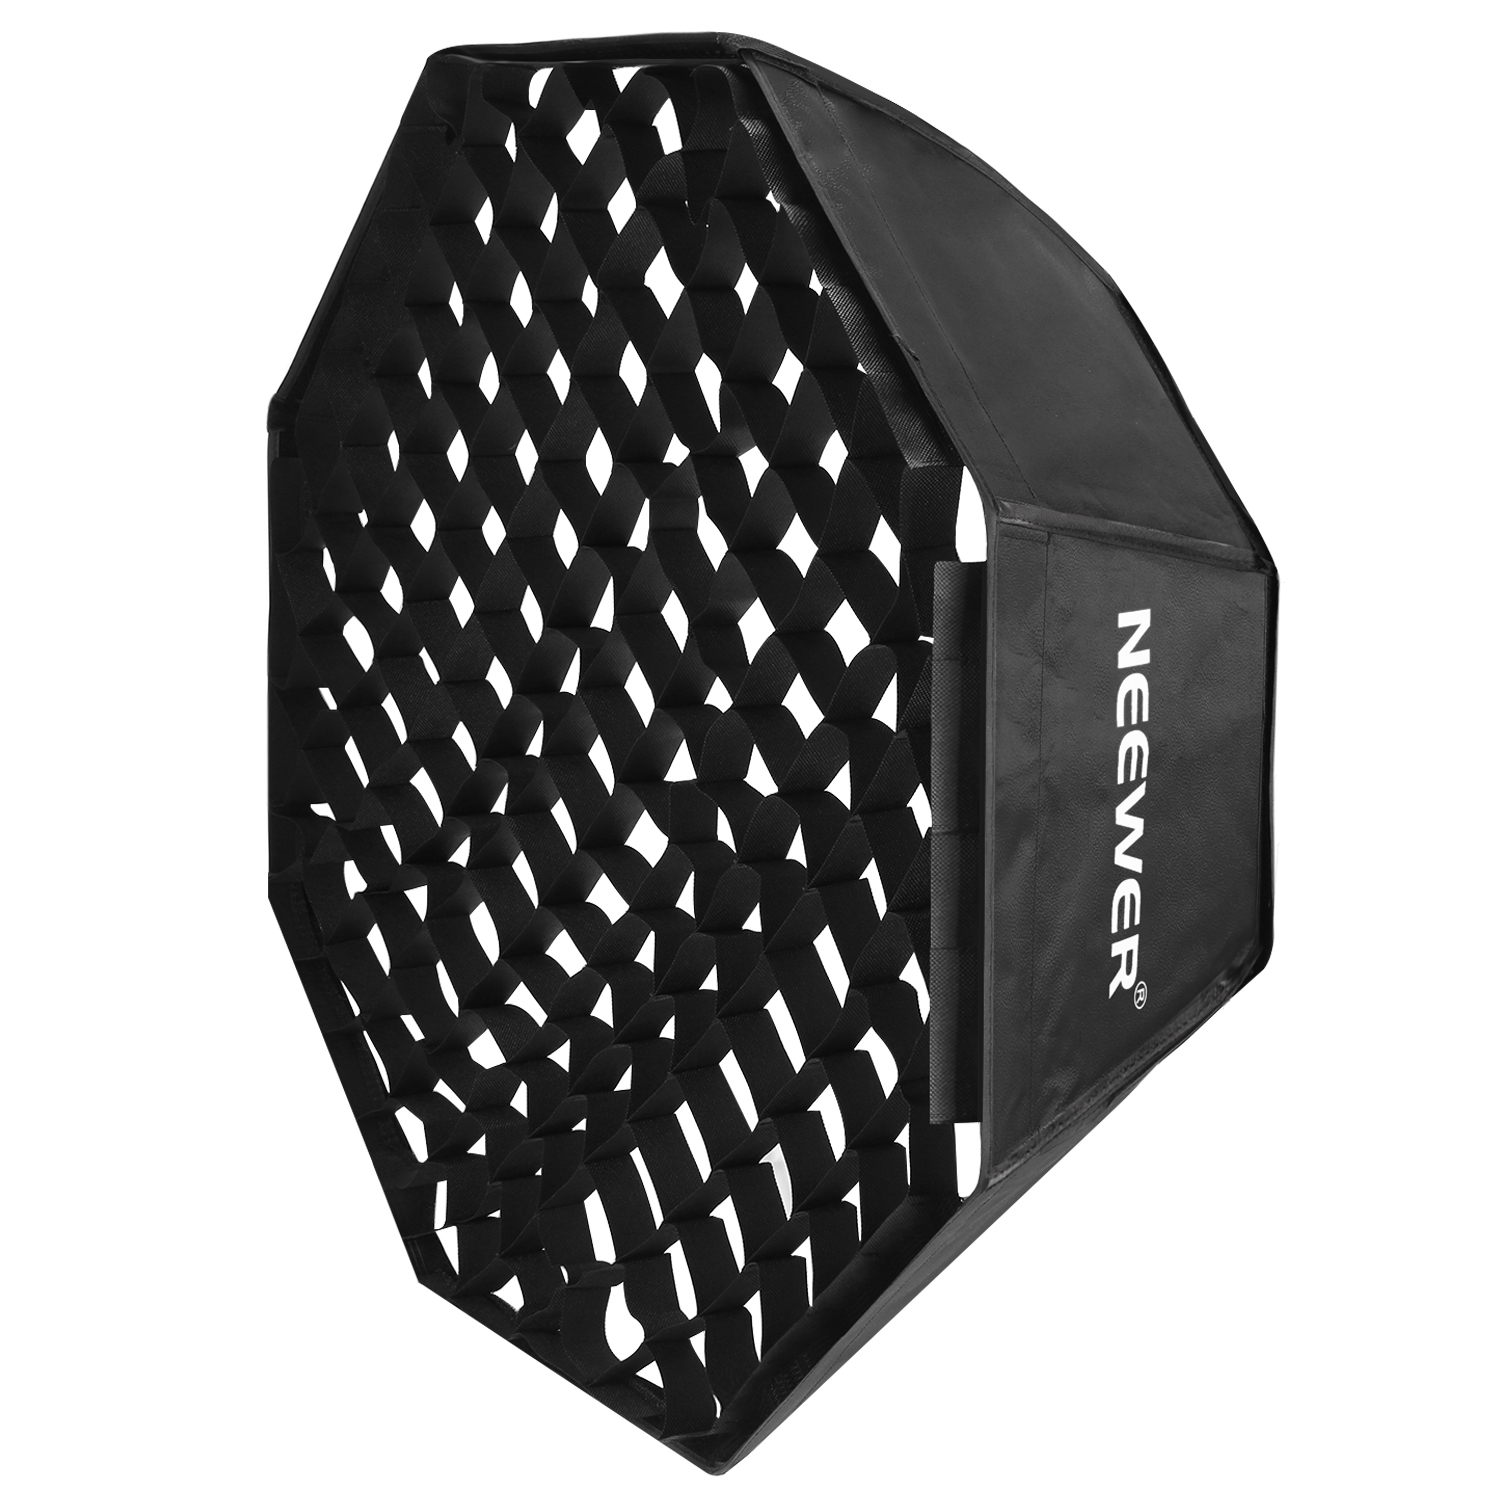 Neewer Portable Octagon Softbox With Grid Bowens Mount